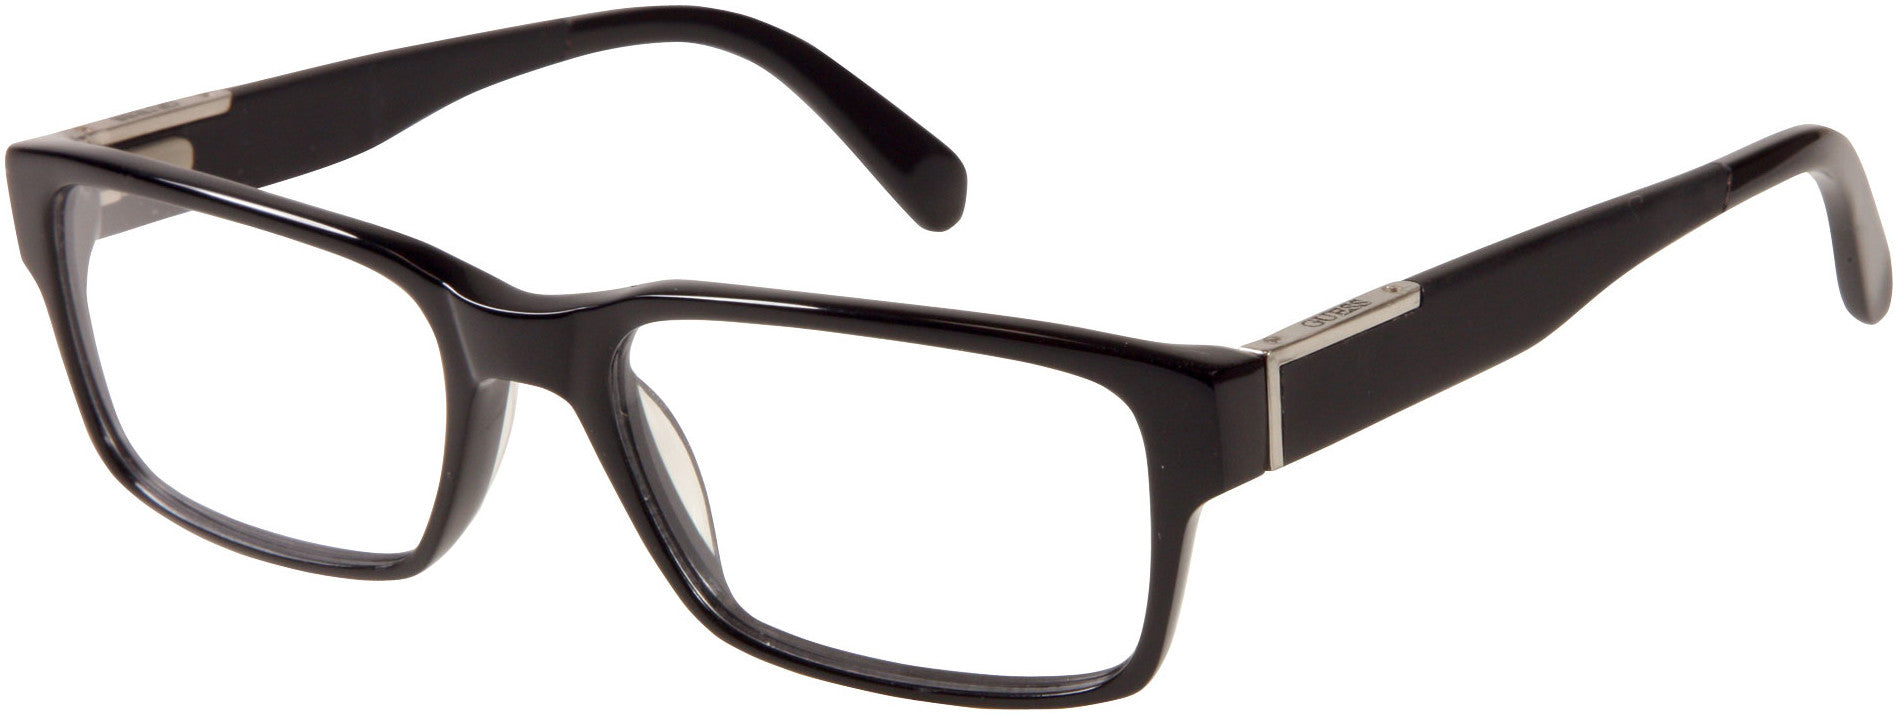 Guess GU1775 Eyeglasses B84-B84 - Black